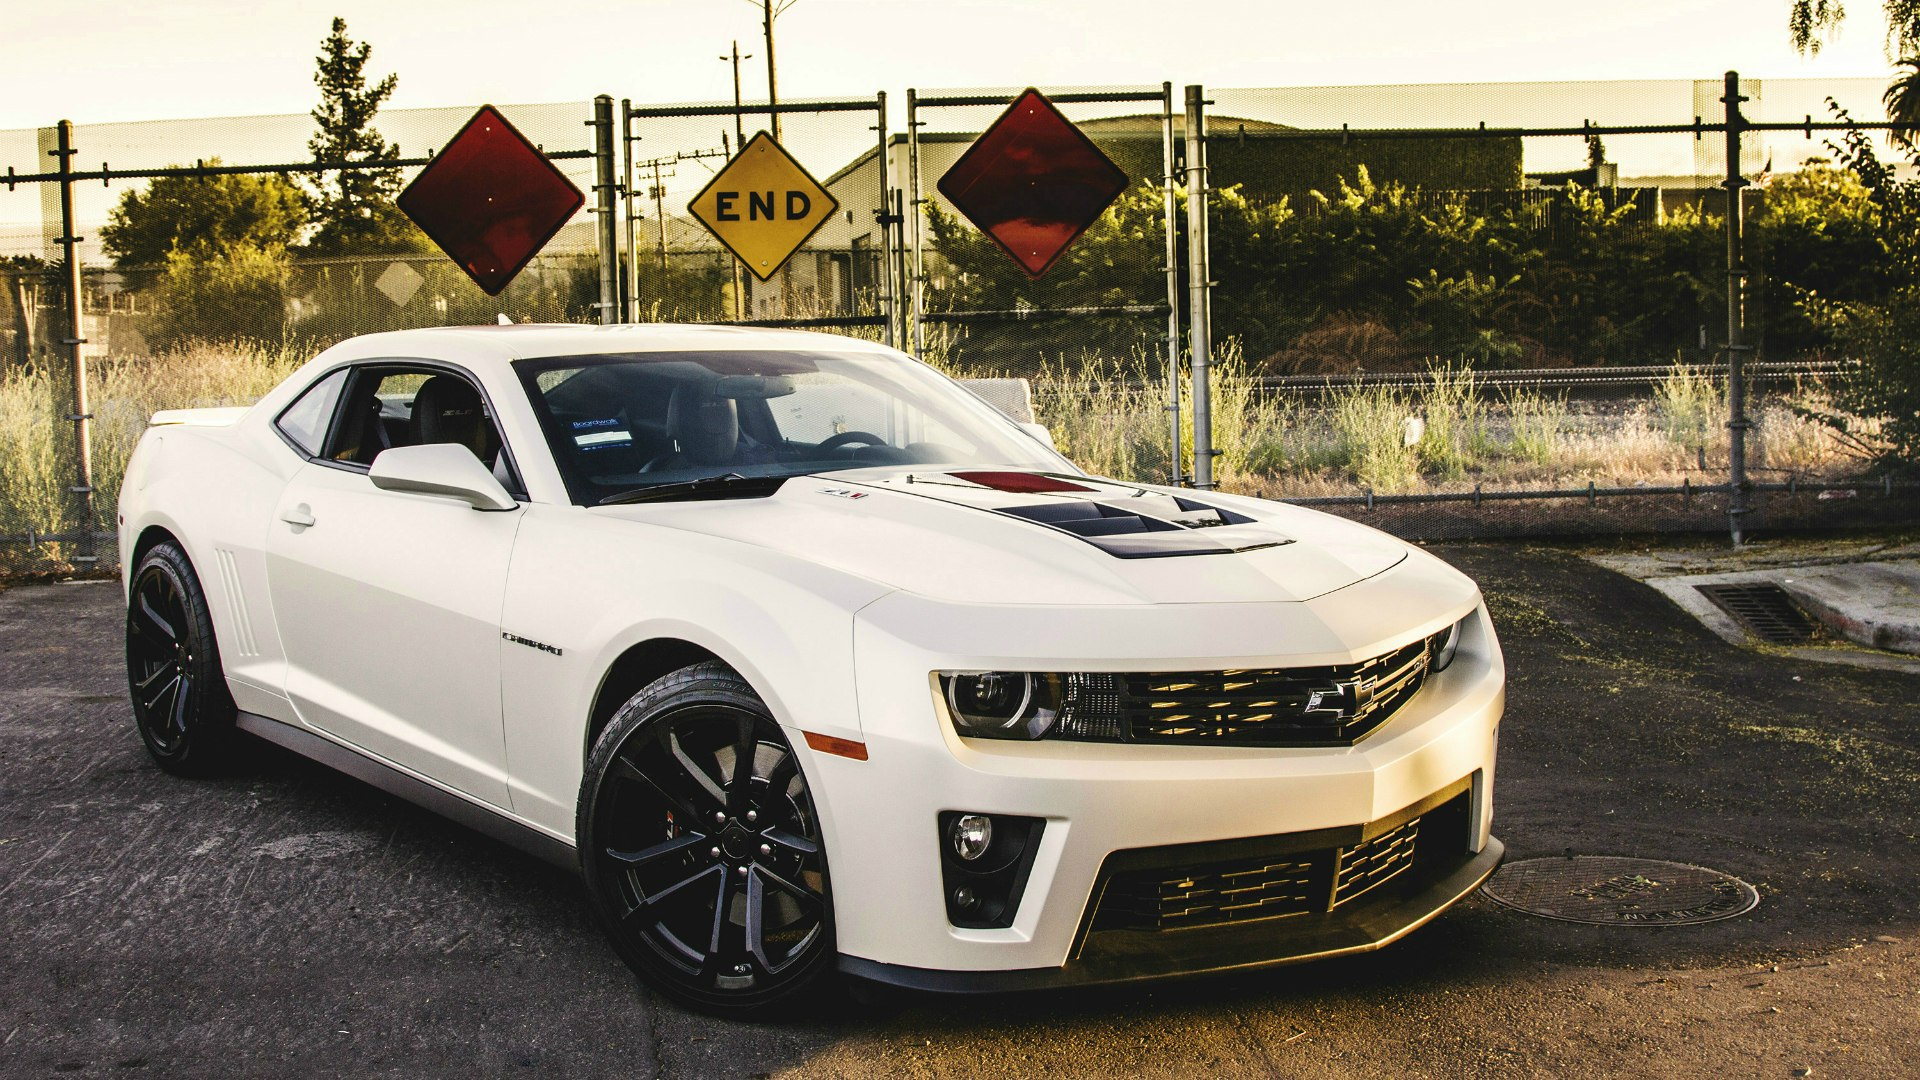 White Chevrolet Camaro ZL1 wallpapers and images 1920x1080